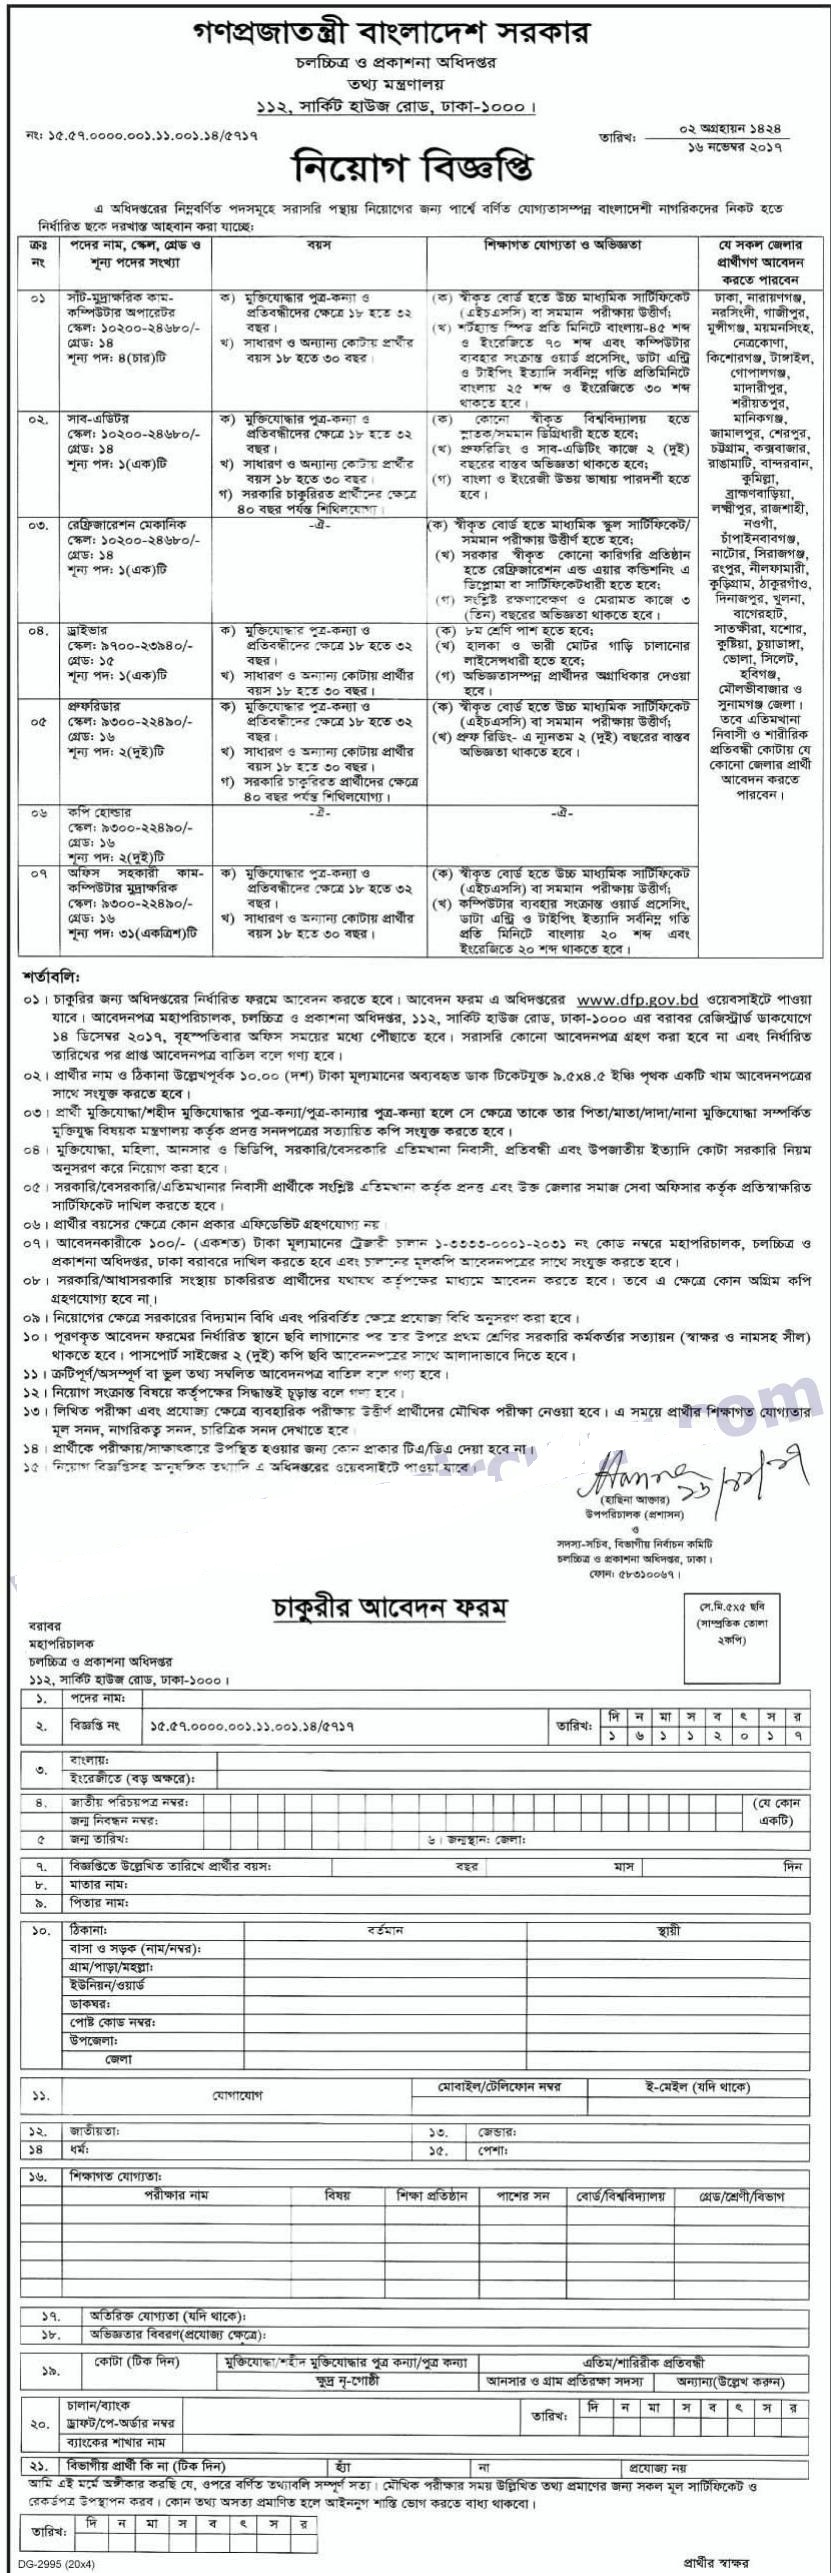 Department of Films & Publications (DFP) Job Circular 2017